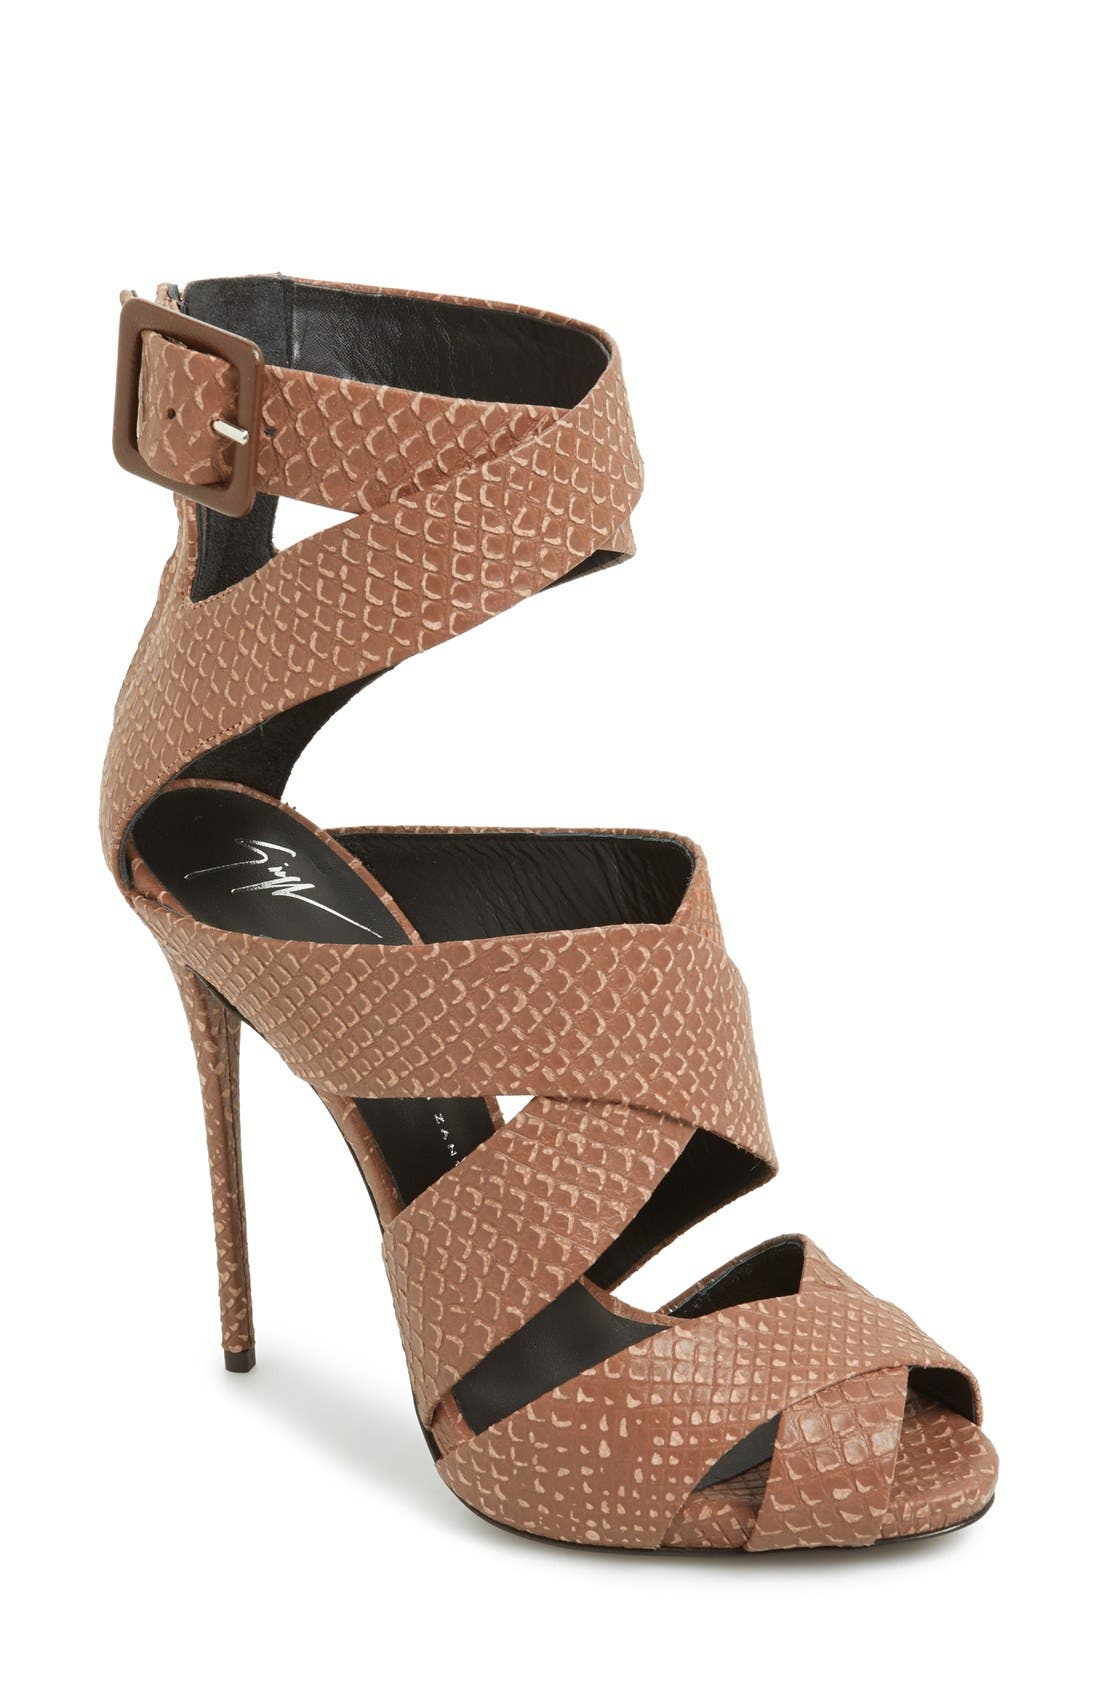 Alternate Image 1 Selected - Giuseppe Zanotti 'Coline' Snake Embossed Leather Sandal (Women)